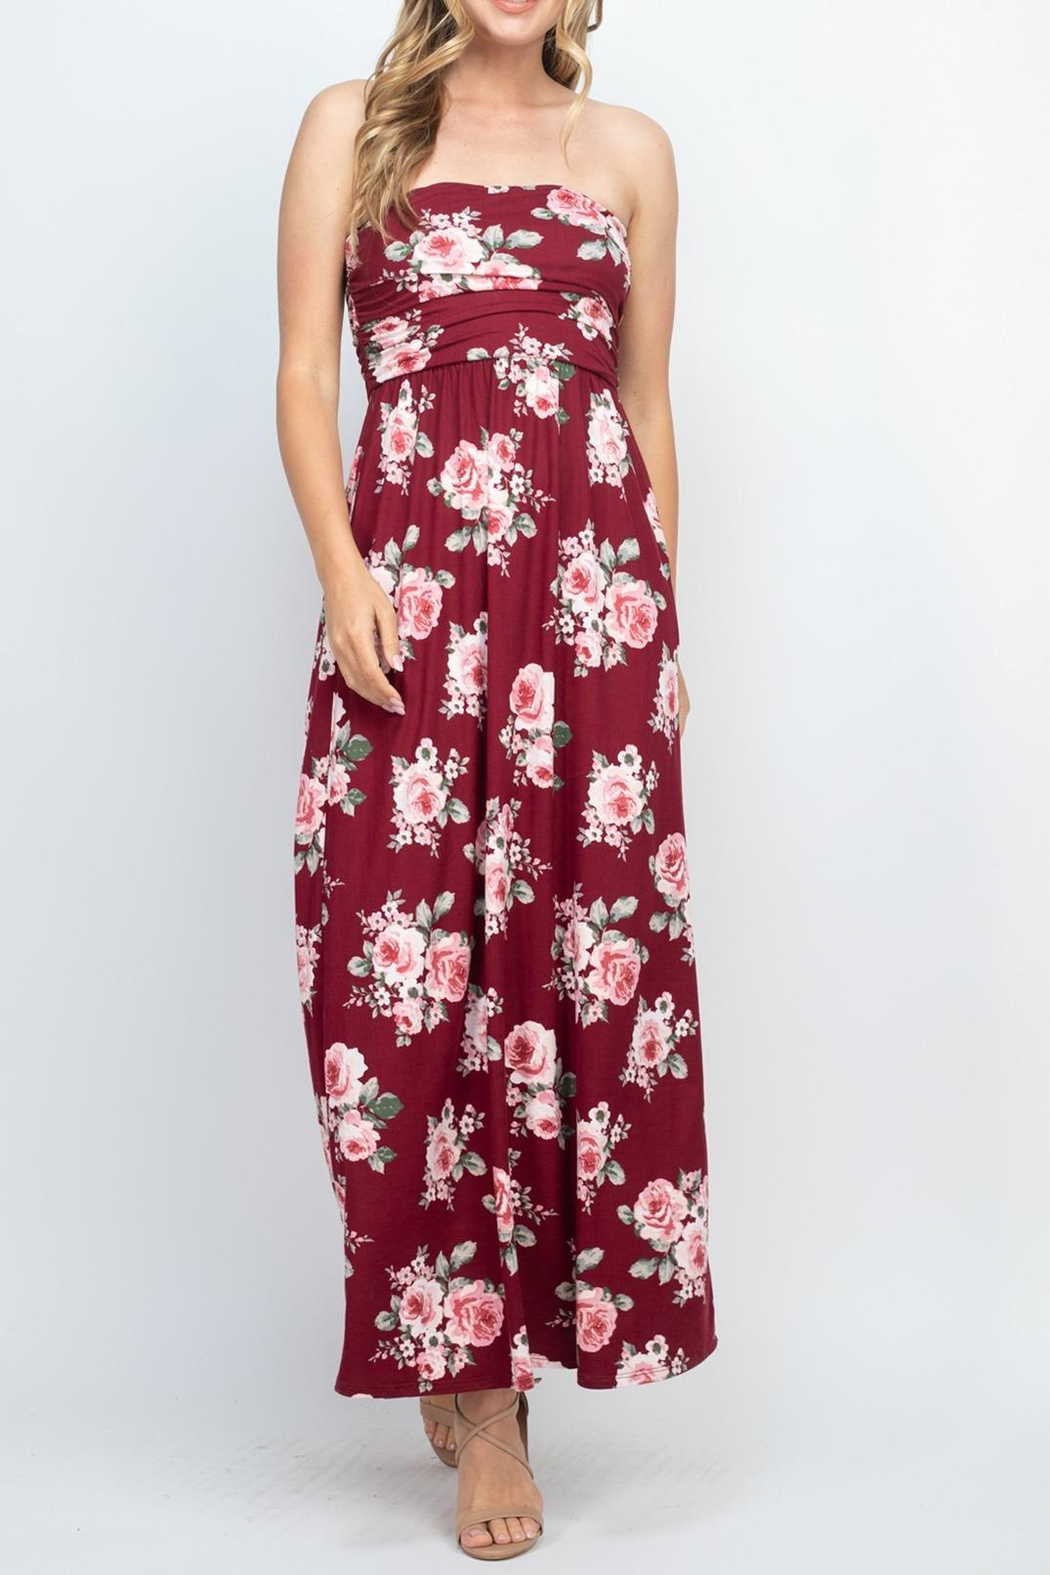 Riah Fashion Tube-Top-Floral-Pocket-Maxi-Dress-With-Inside-Lining - Front Cropped Image